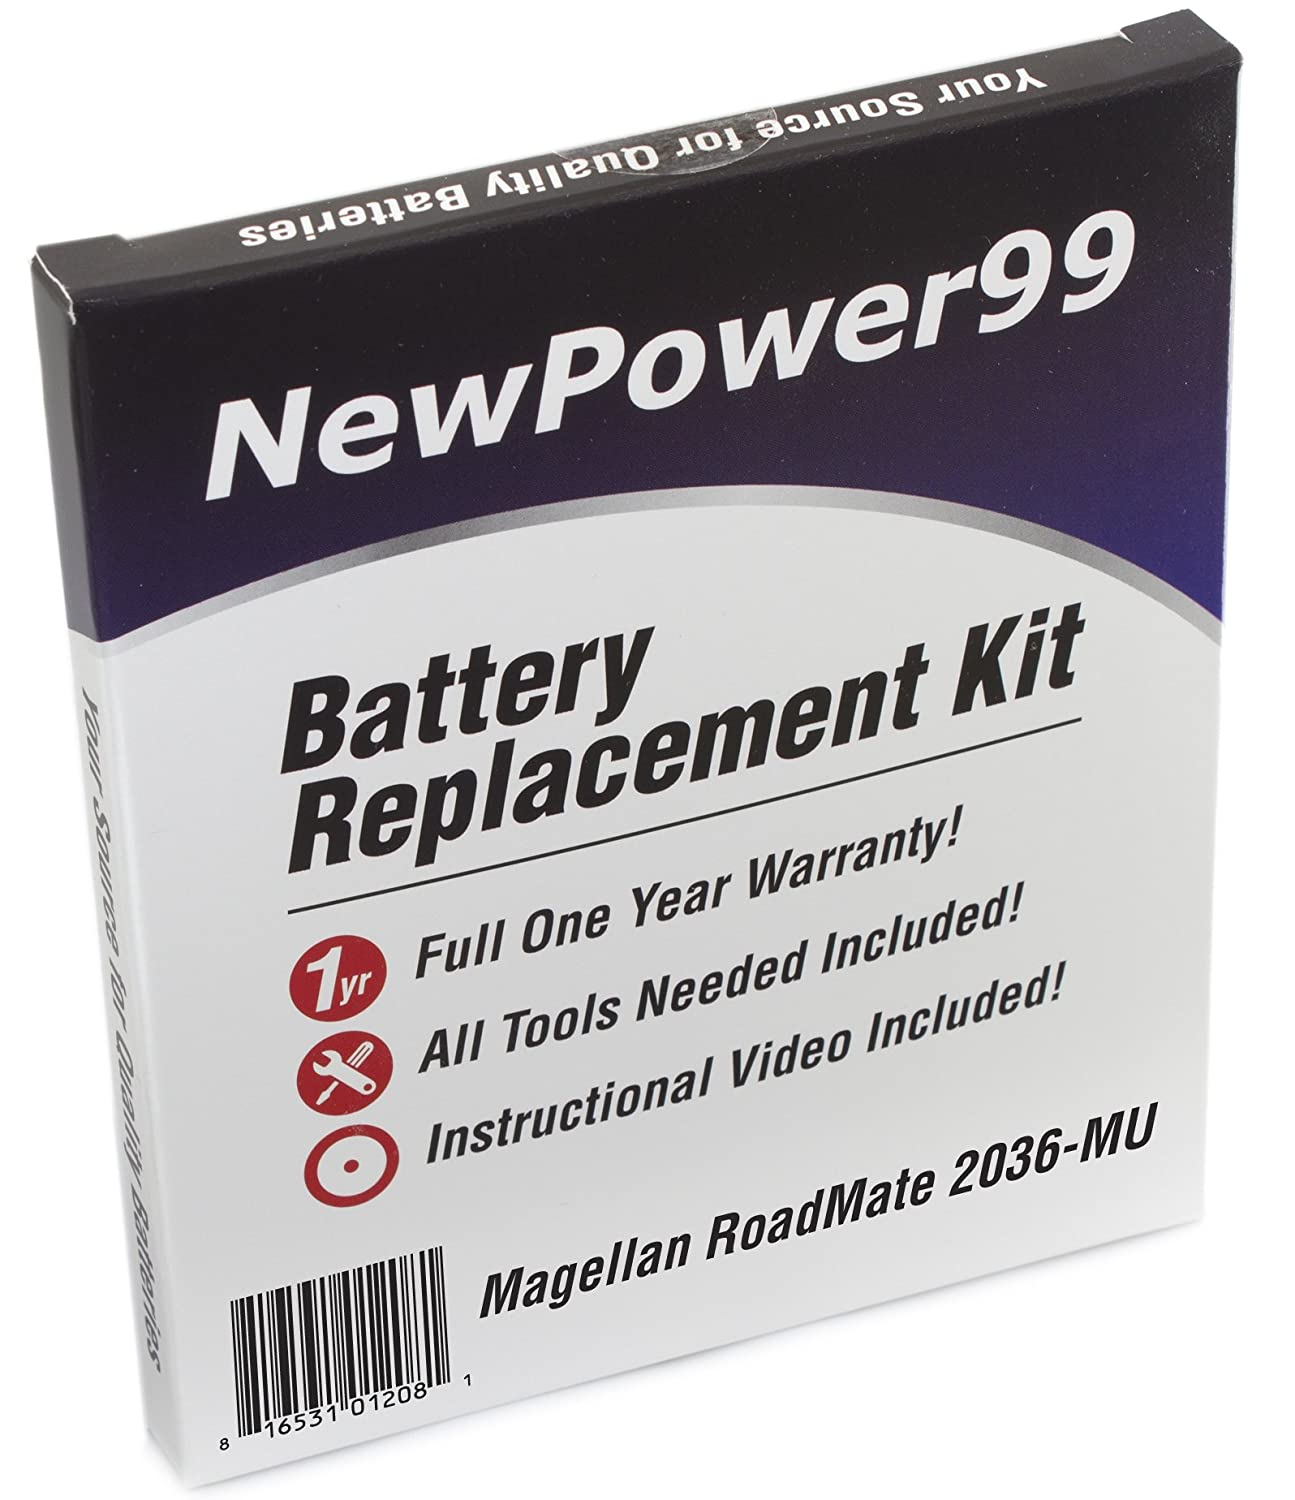 NewPower99 Battery Replacement Kit with Battery Video Instructions and Tools for Magellan RoadMate 2036MU